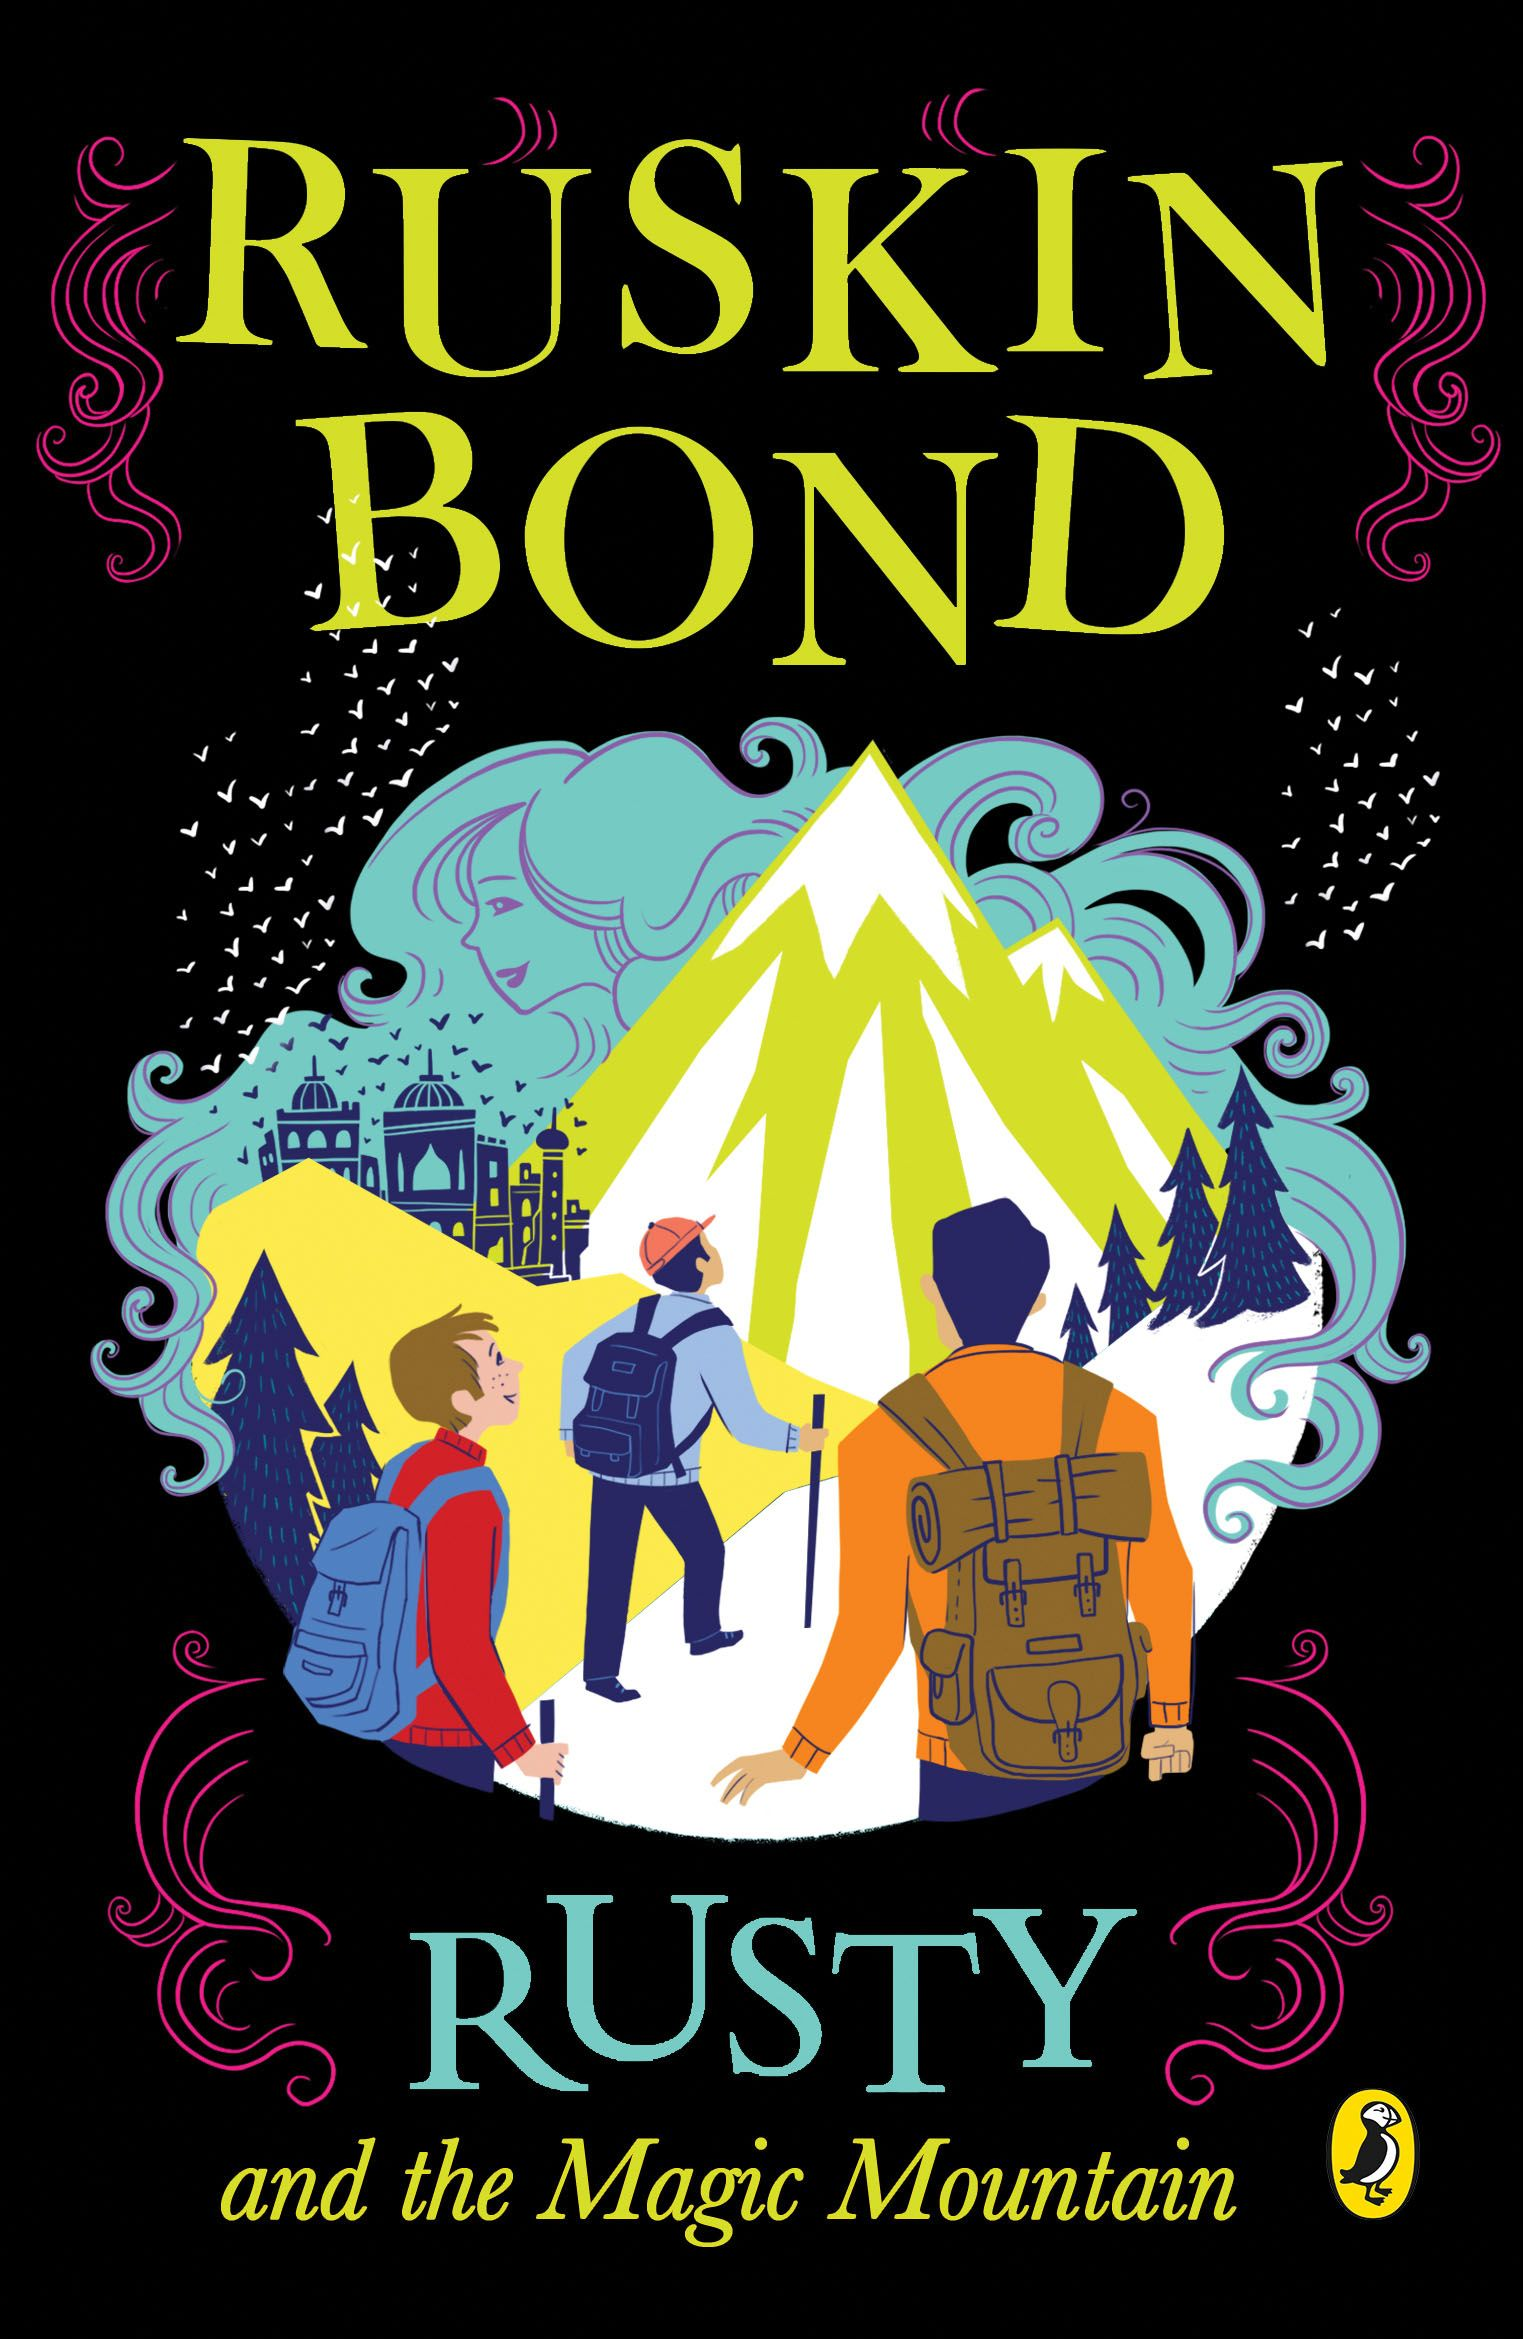 A Decade Later Ruskin Bond Brings Back Rusty For His Readers Ruskin Bond Bond A Decade